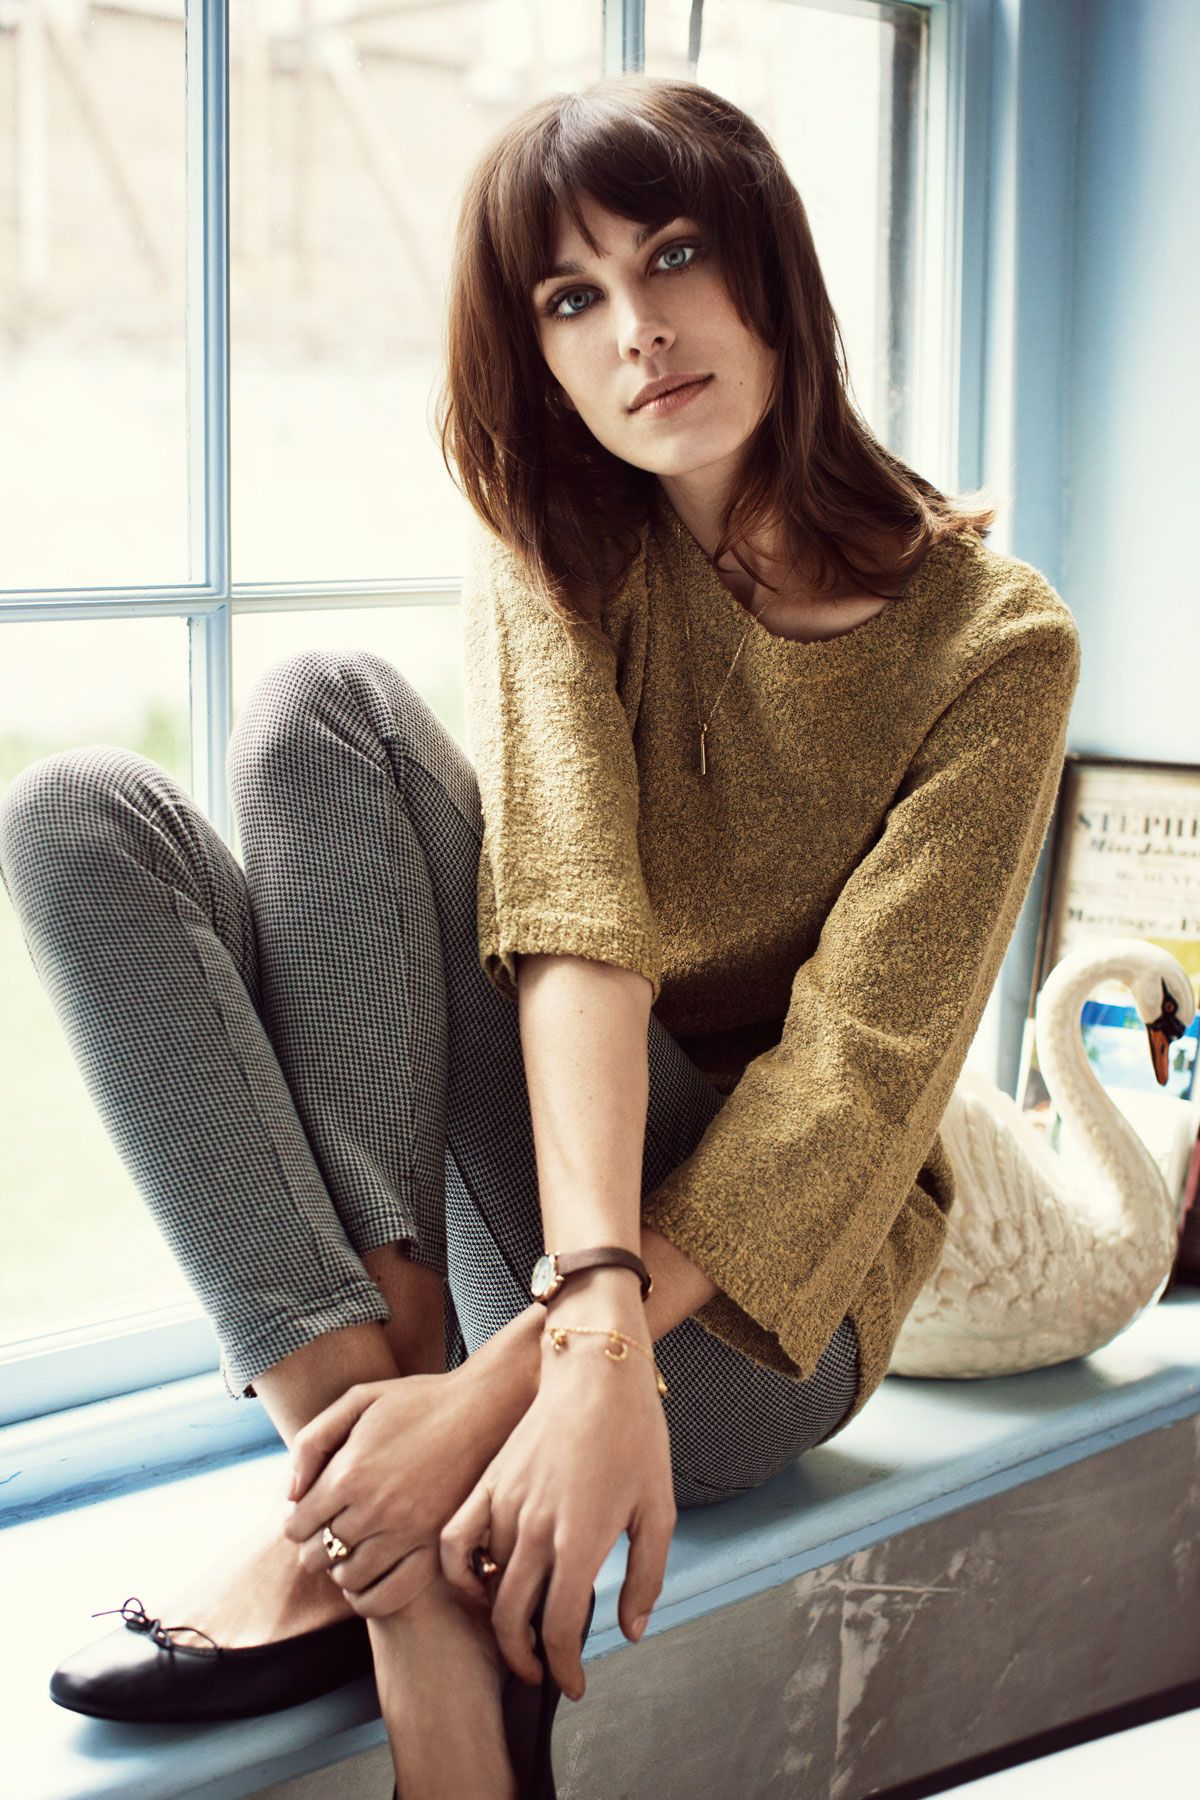 Communication on this topic: Alexa Chung for Vero Moda MarchApril 2012, alexa-chung-for-vero-moda-marchapril-2012/